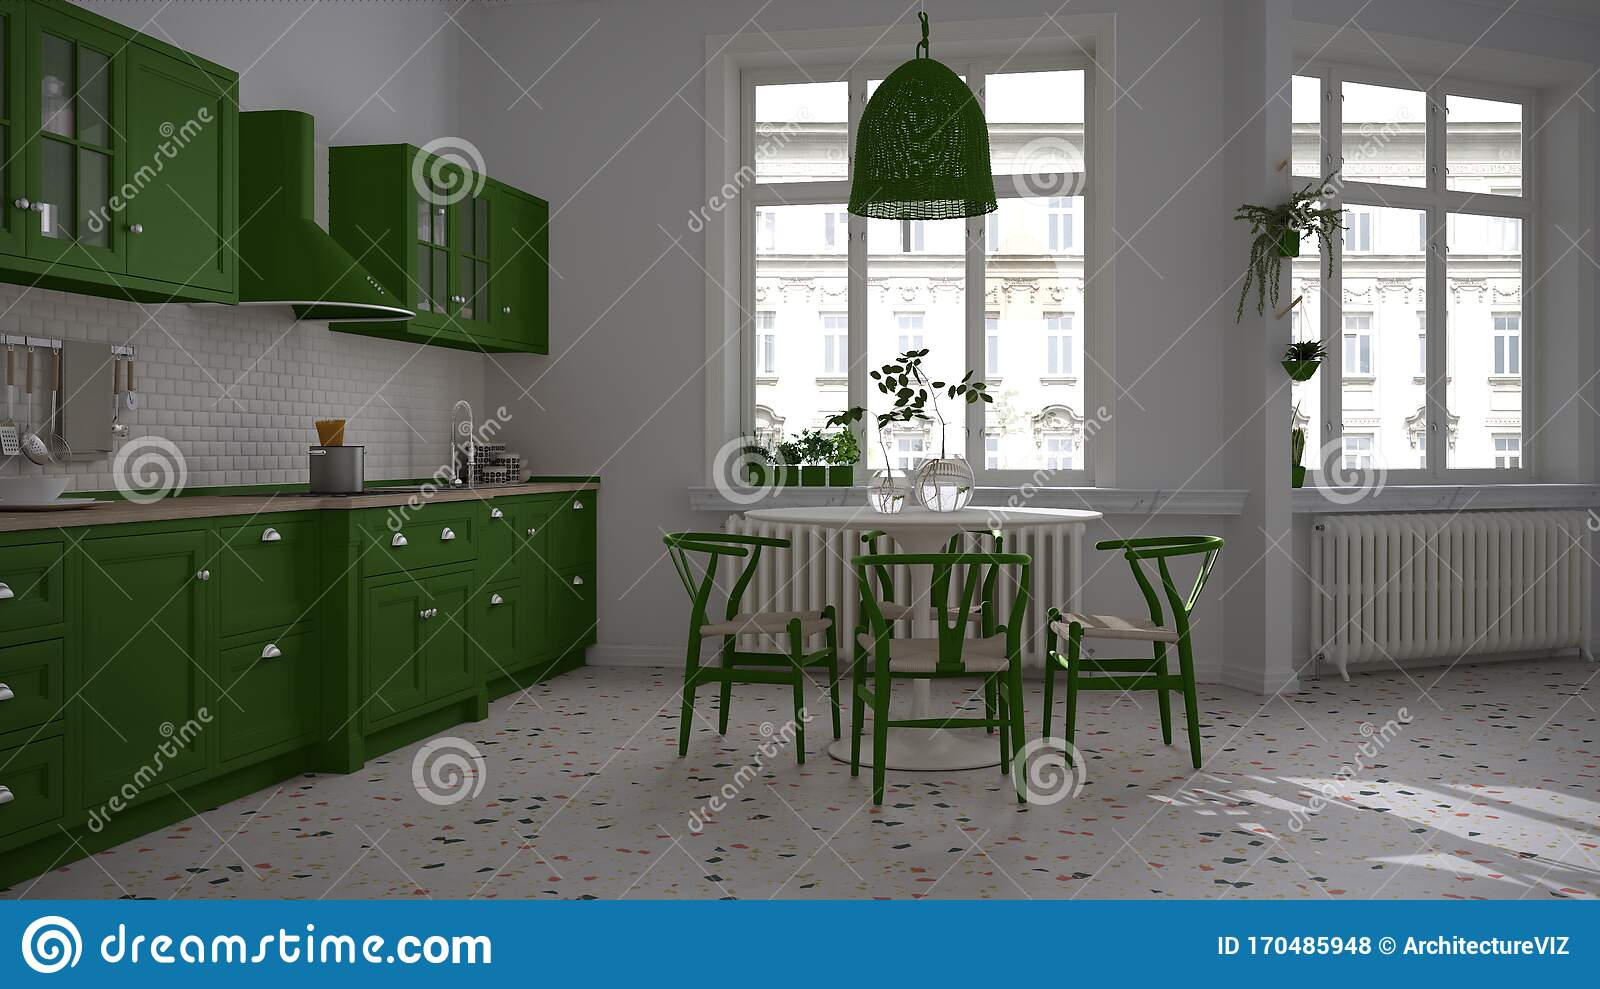 Retro White And Green Vintage Kitchen With Terrazzo Marble Floor Panoramic Windows Dining Room Round Table With Wooden Chairs Stock Illustration Illustration Of Window Residence 170485948